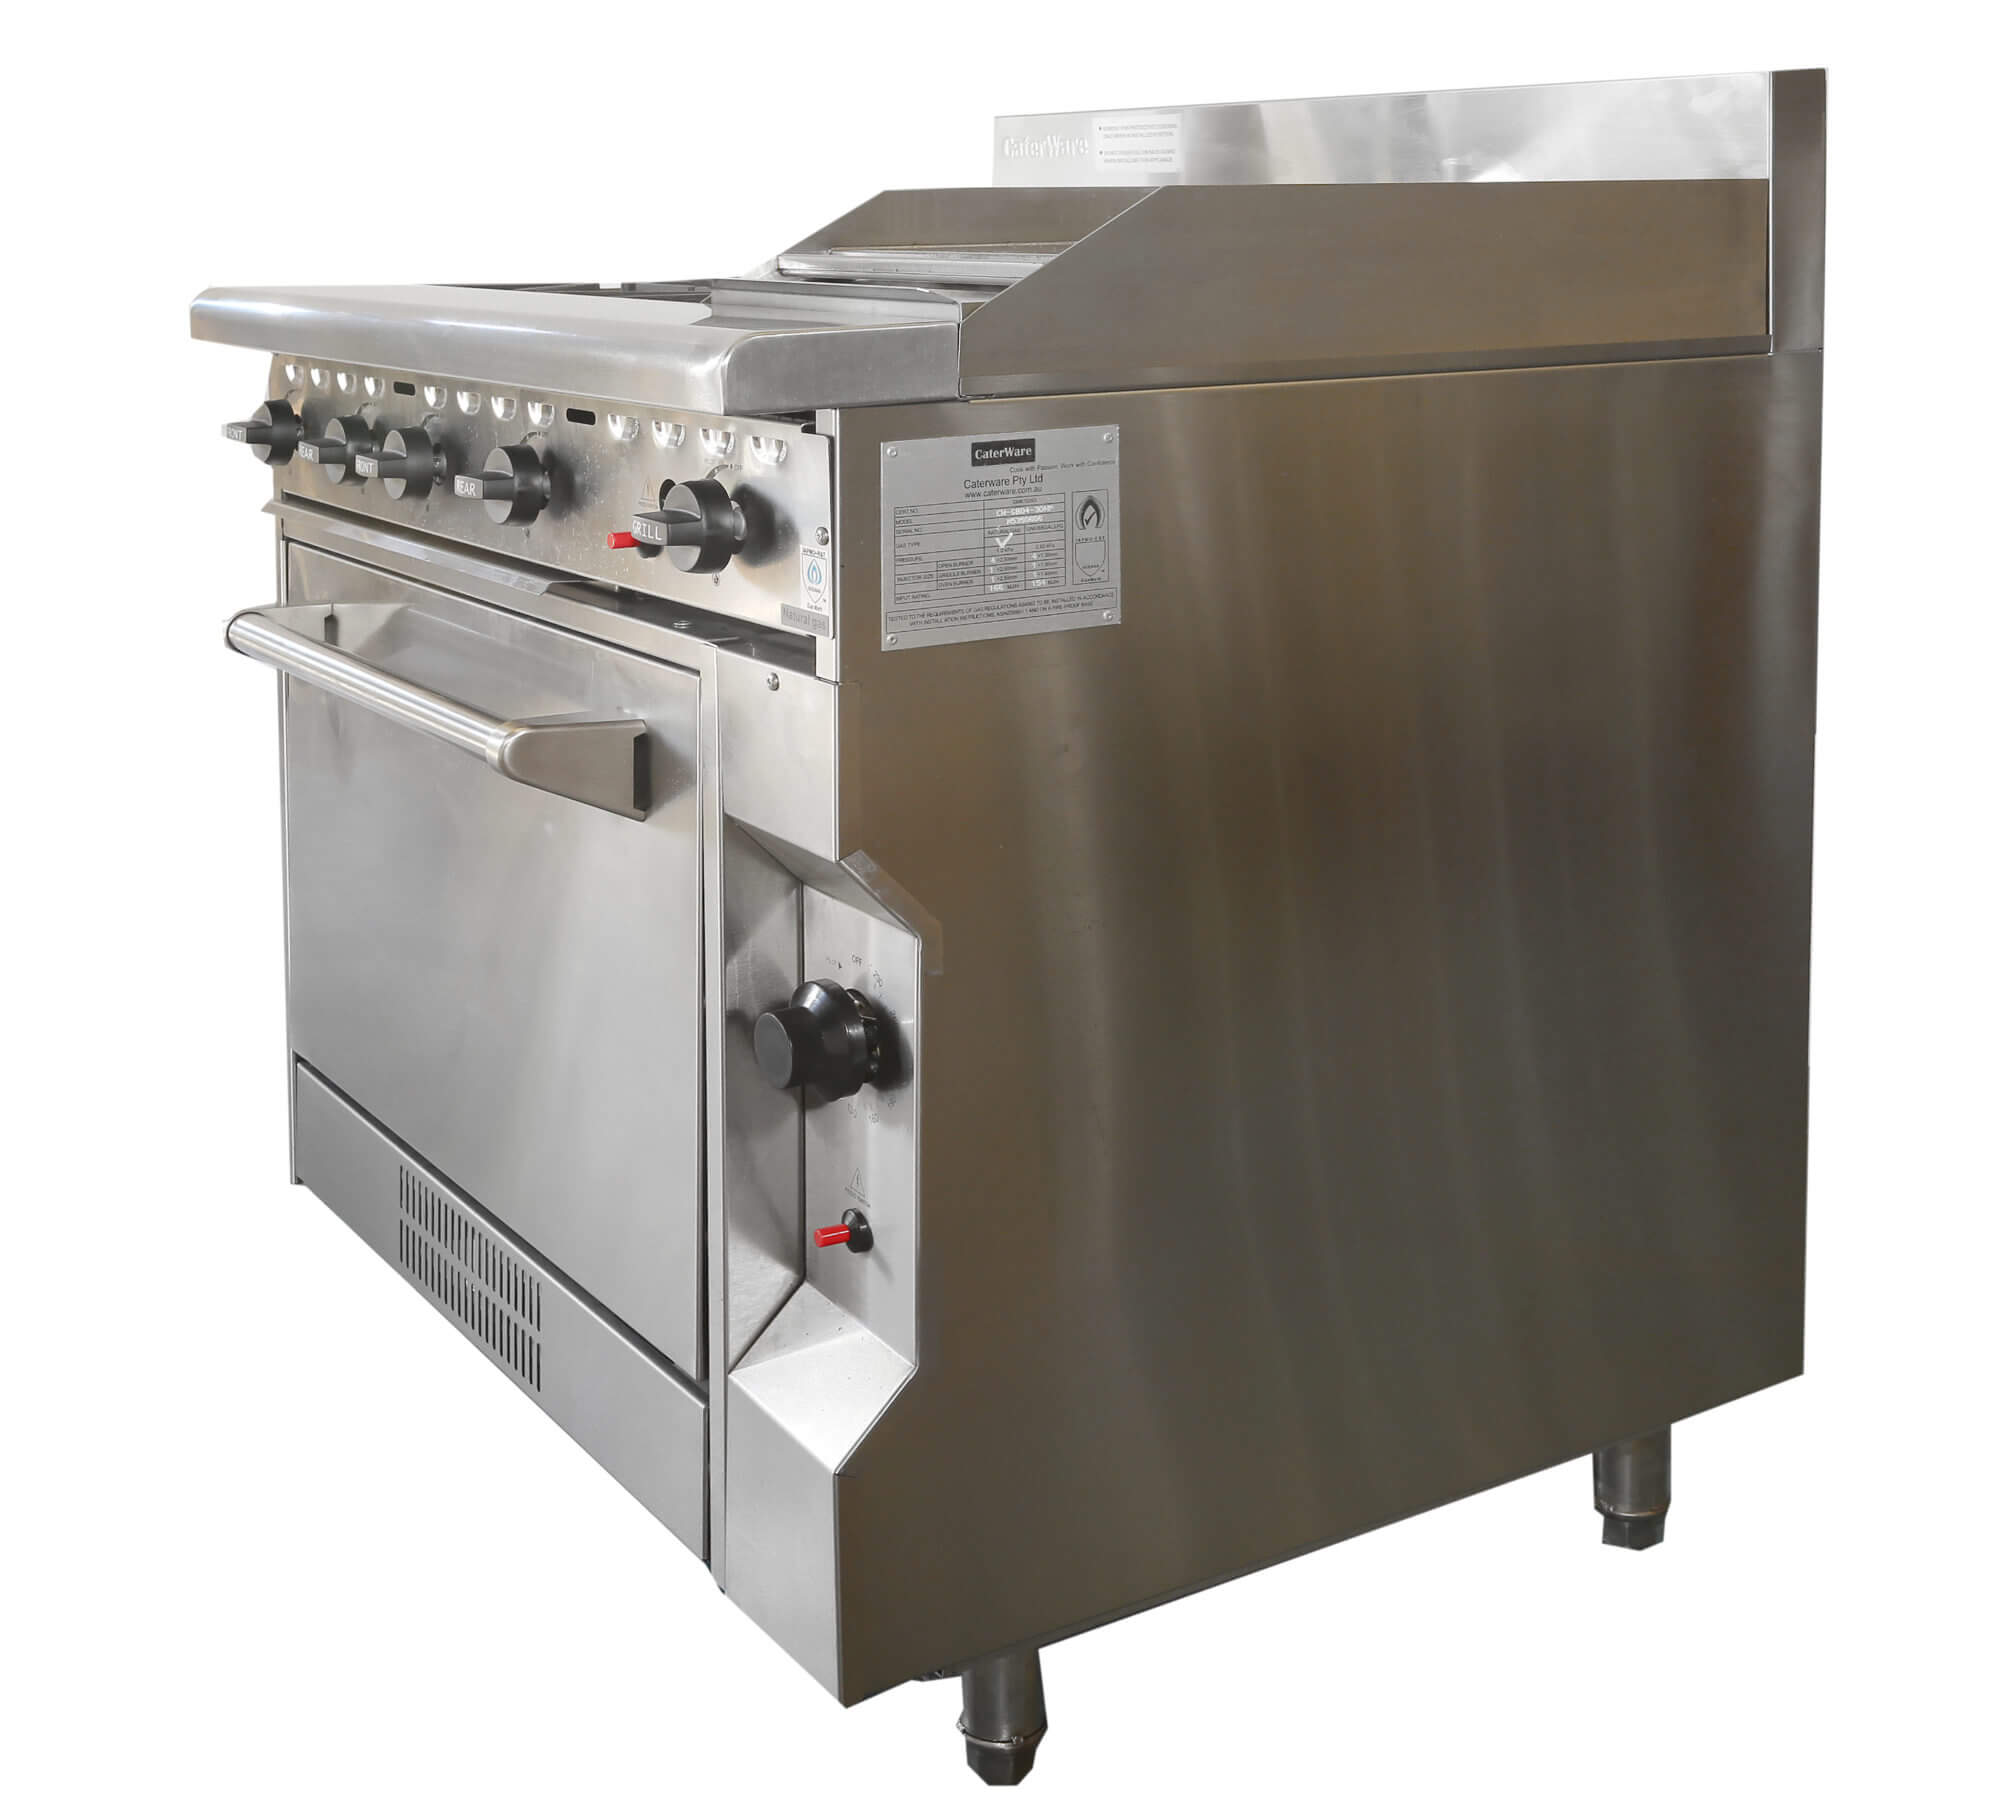 COMMERCIAL CATERWARE S/S GAS FOUR BURNER / 300mm HOTPLATE ...